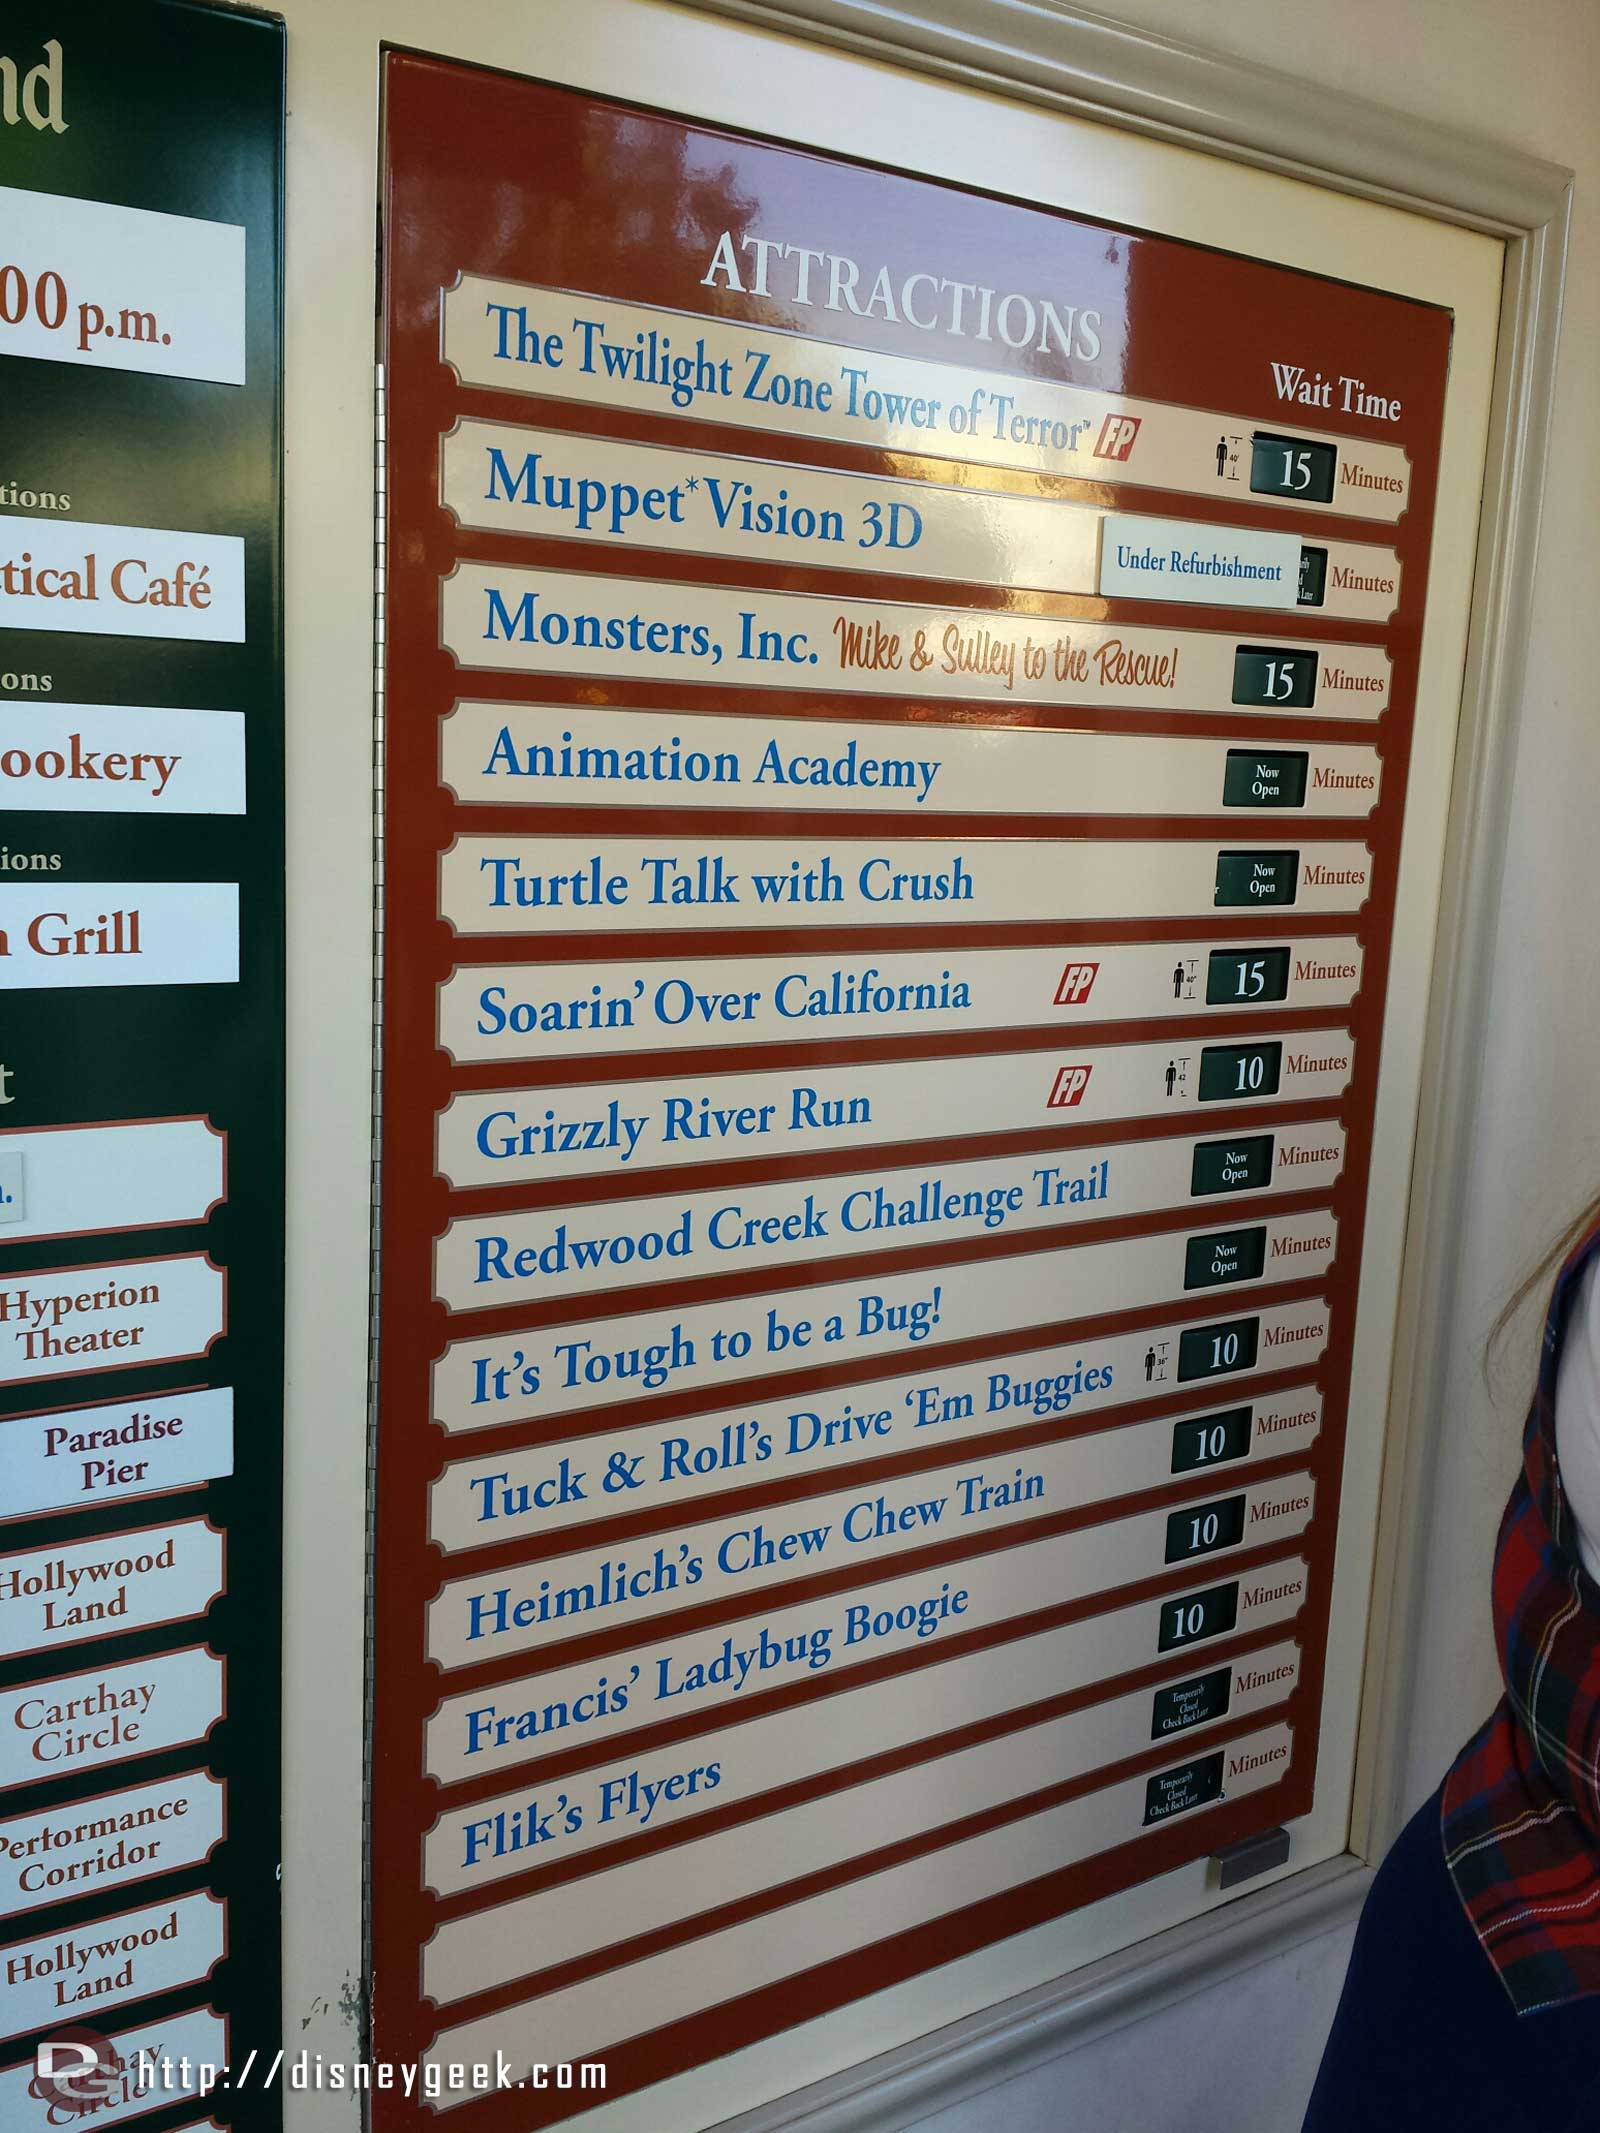 More DCA wait times as of 1:38pm